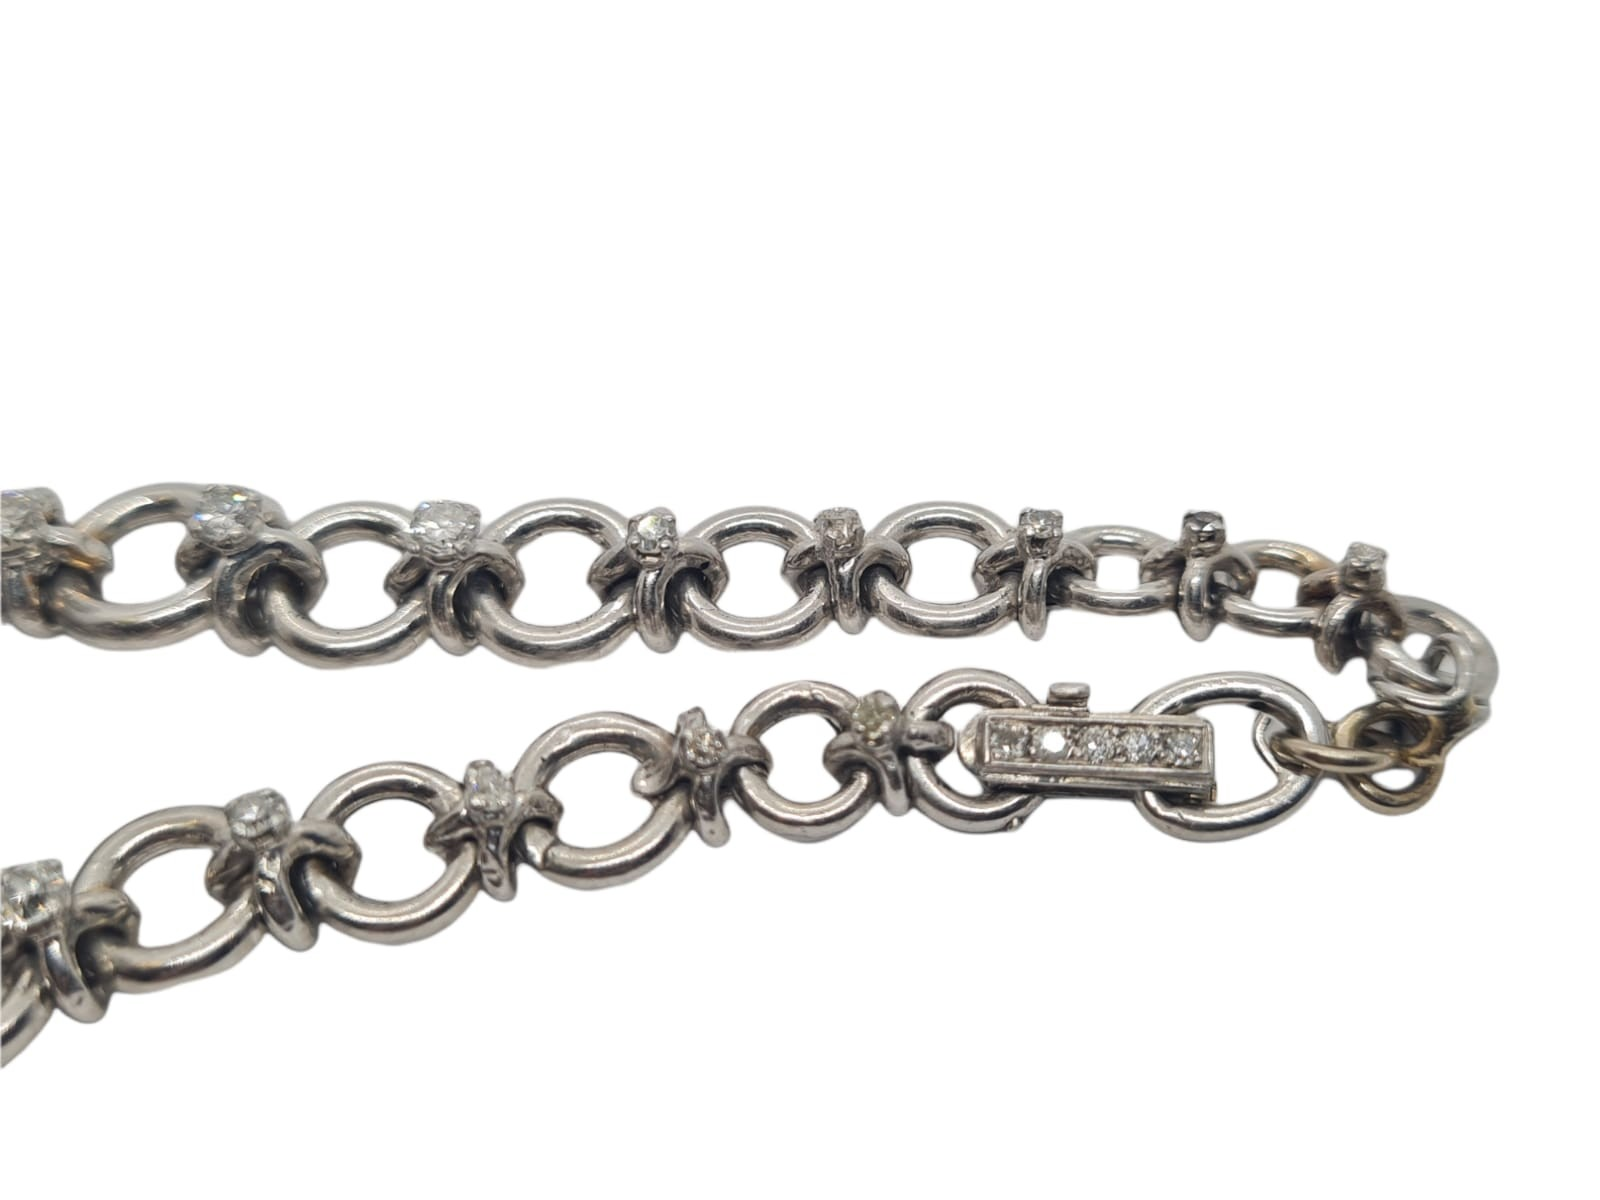 18k white gold French antique diamond and pearl set bracelet, flower design, weight 18.5g approx 2ct - Image 4 of 5